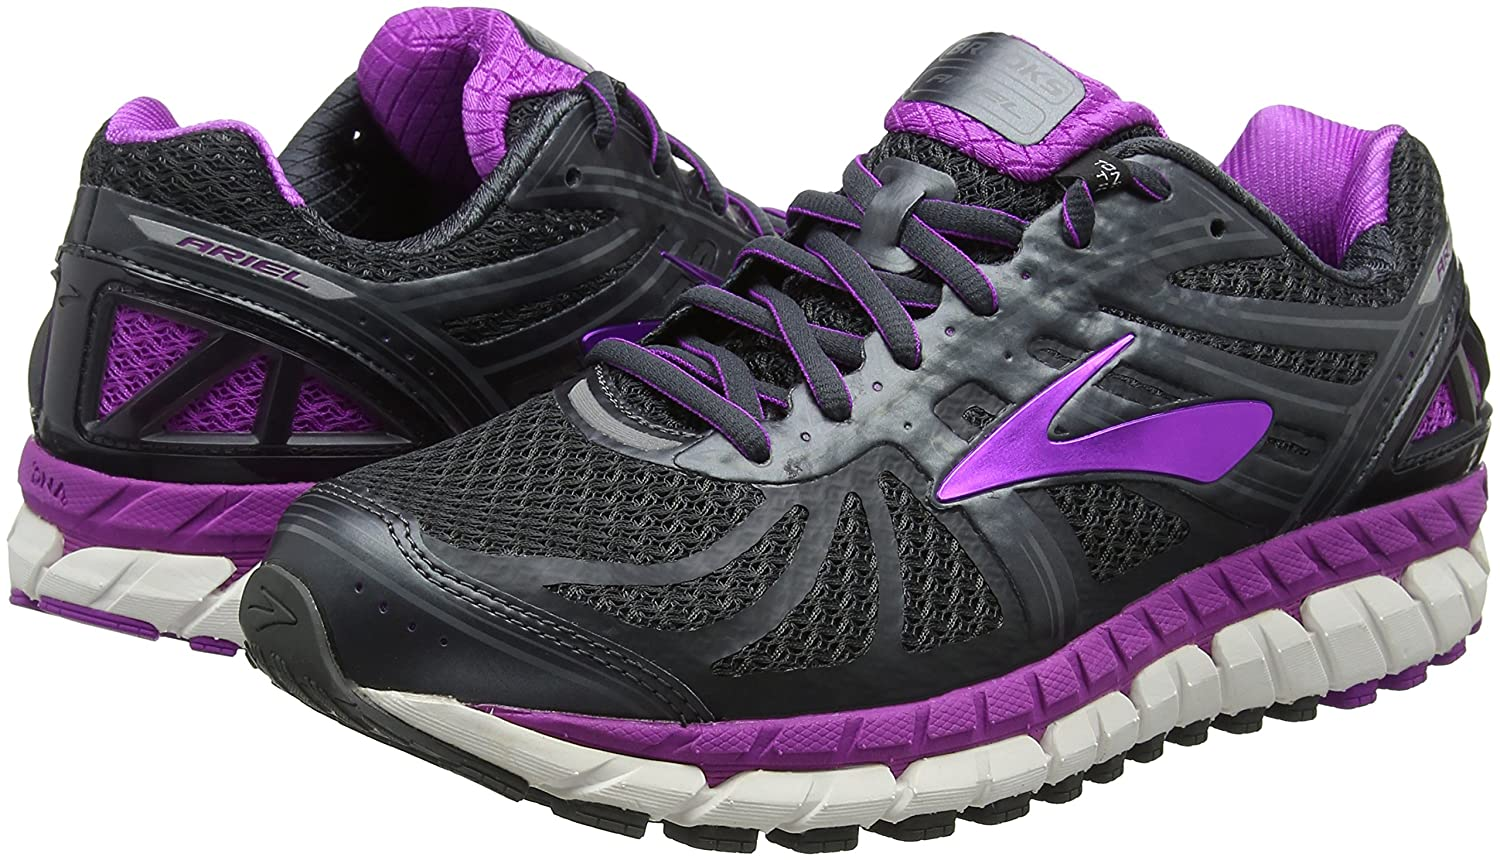 Brooks Womens Ariel '16 Overpronation Stability Running Shoe B01MSJLBR0 12 B(M) US|Anthracite/Purple Cactus Flower/Primer Grey